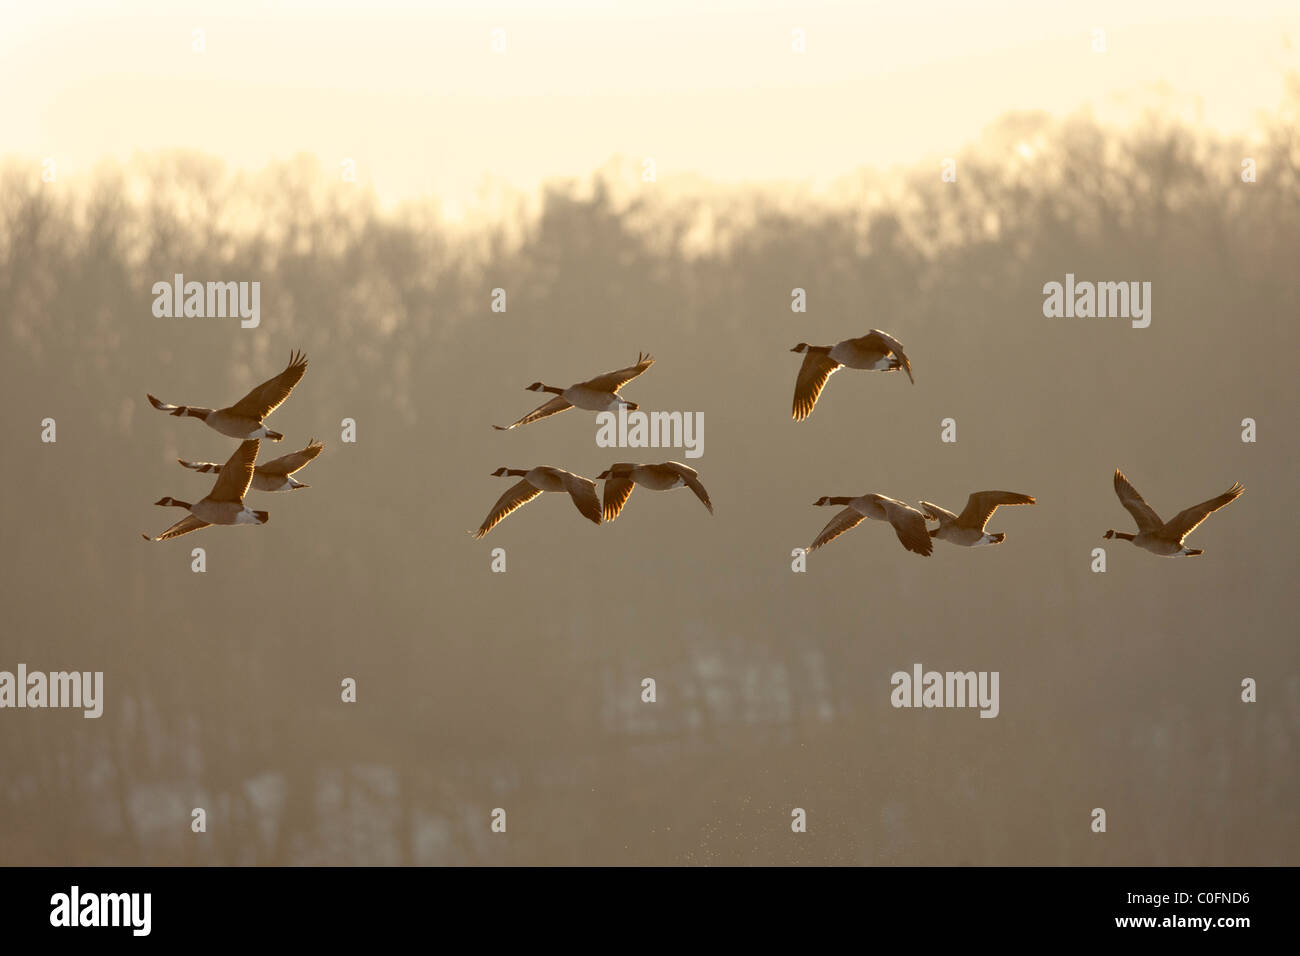 Canada Geese in Flight - Stock Image